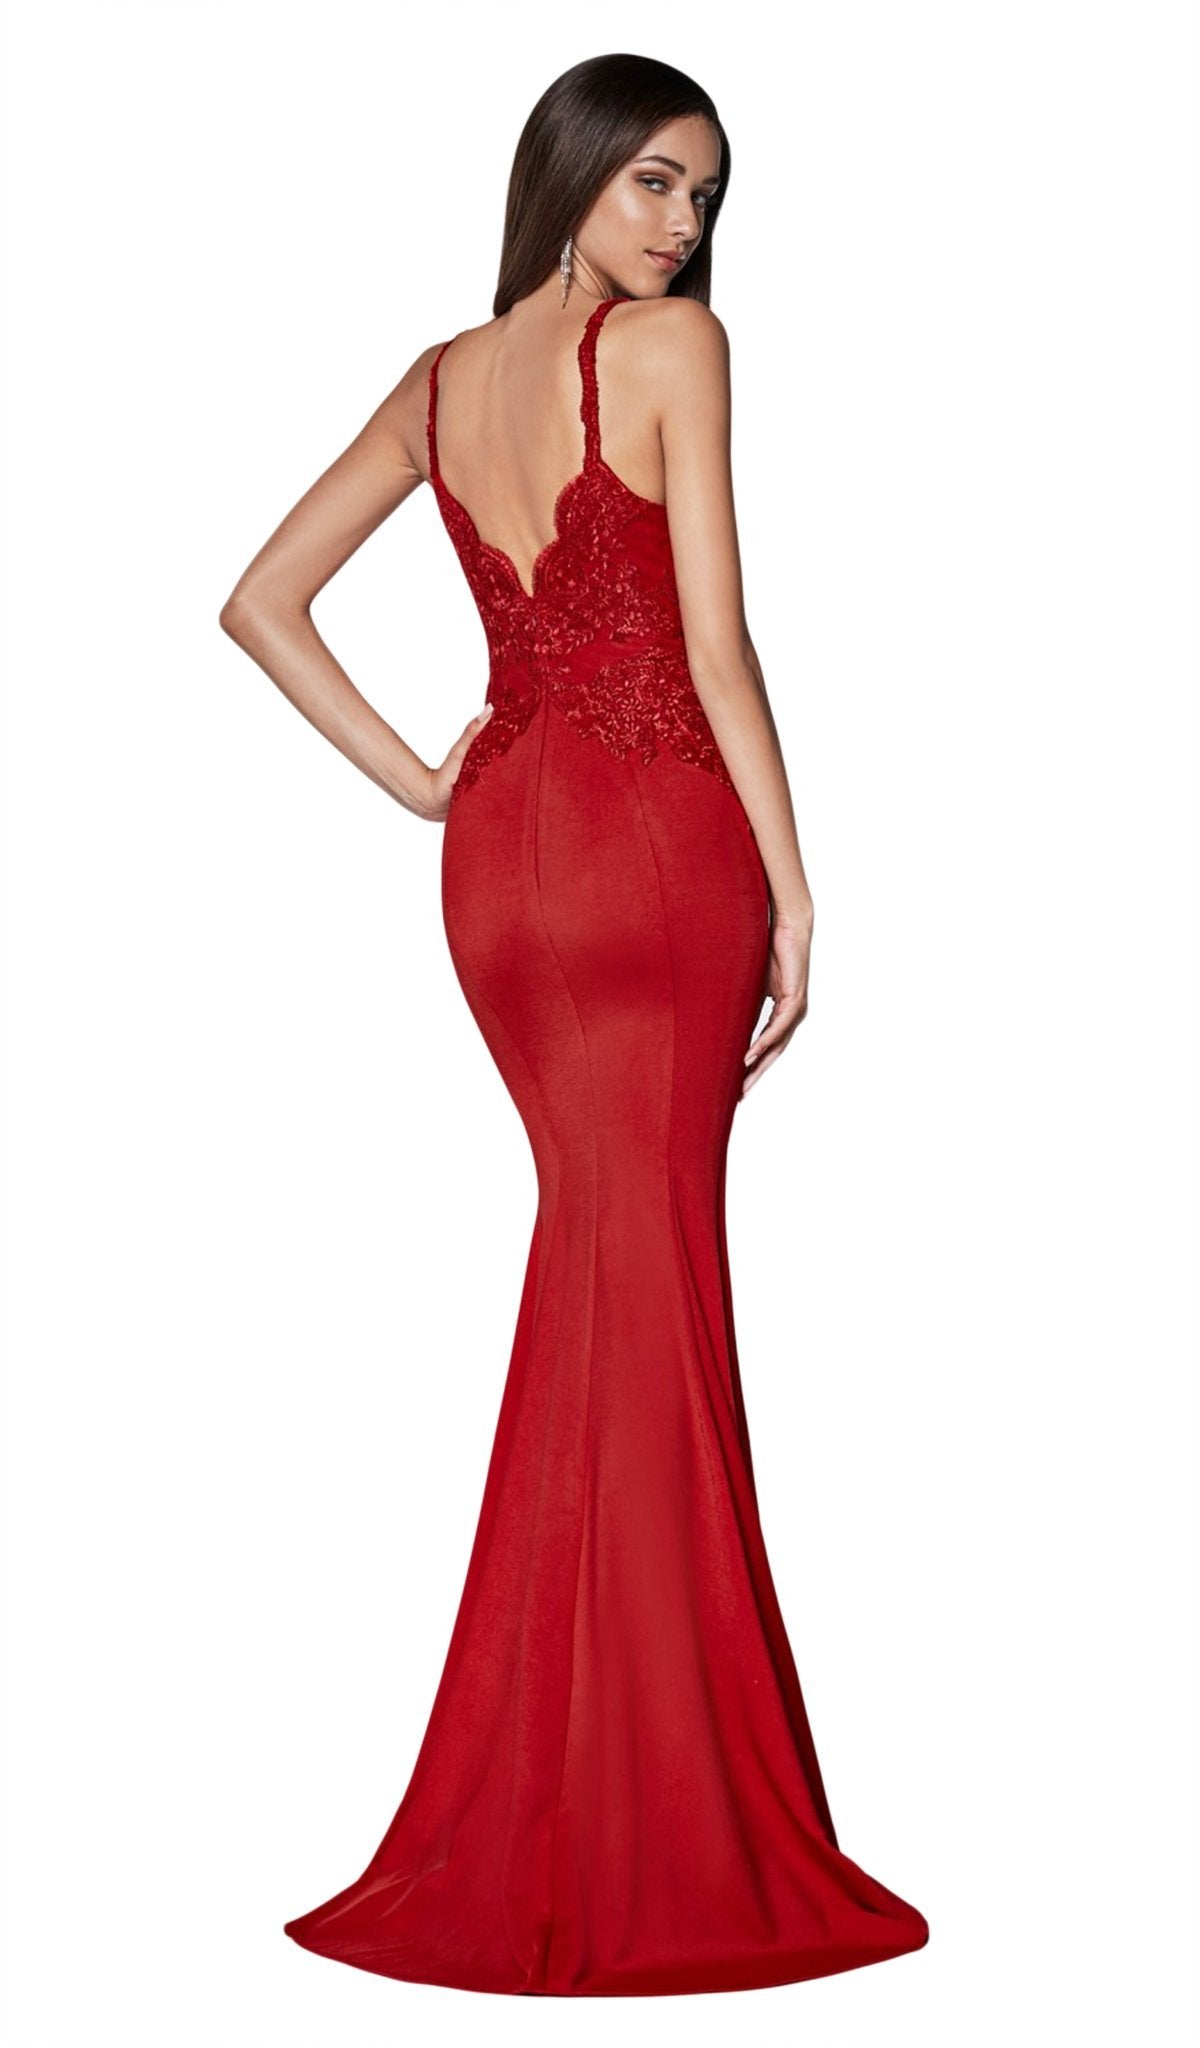 Cinderella Divine - CF319 Lace Scalloped Deep V-neck Trumpet Dress In Red